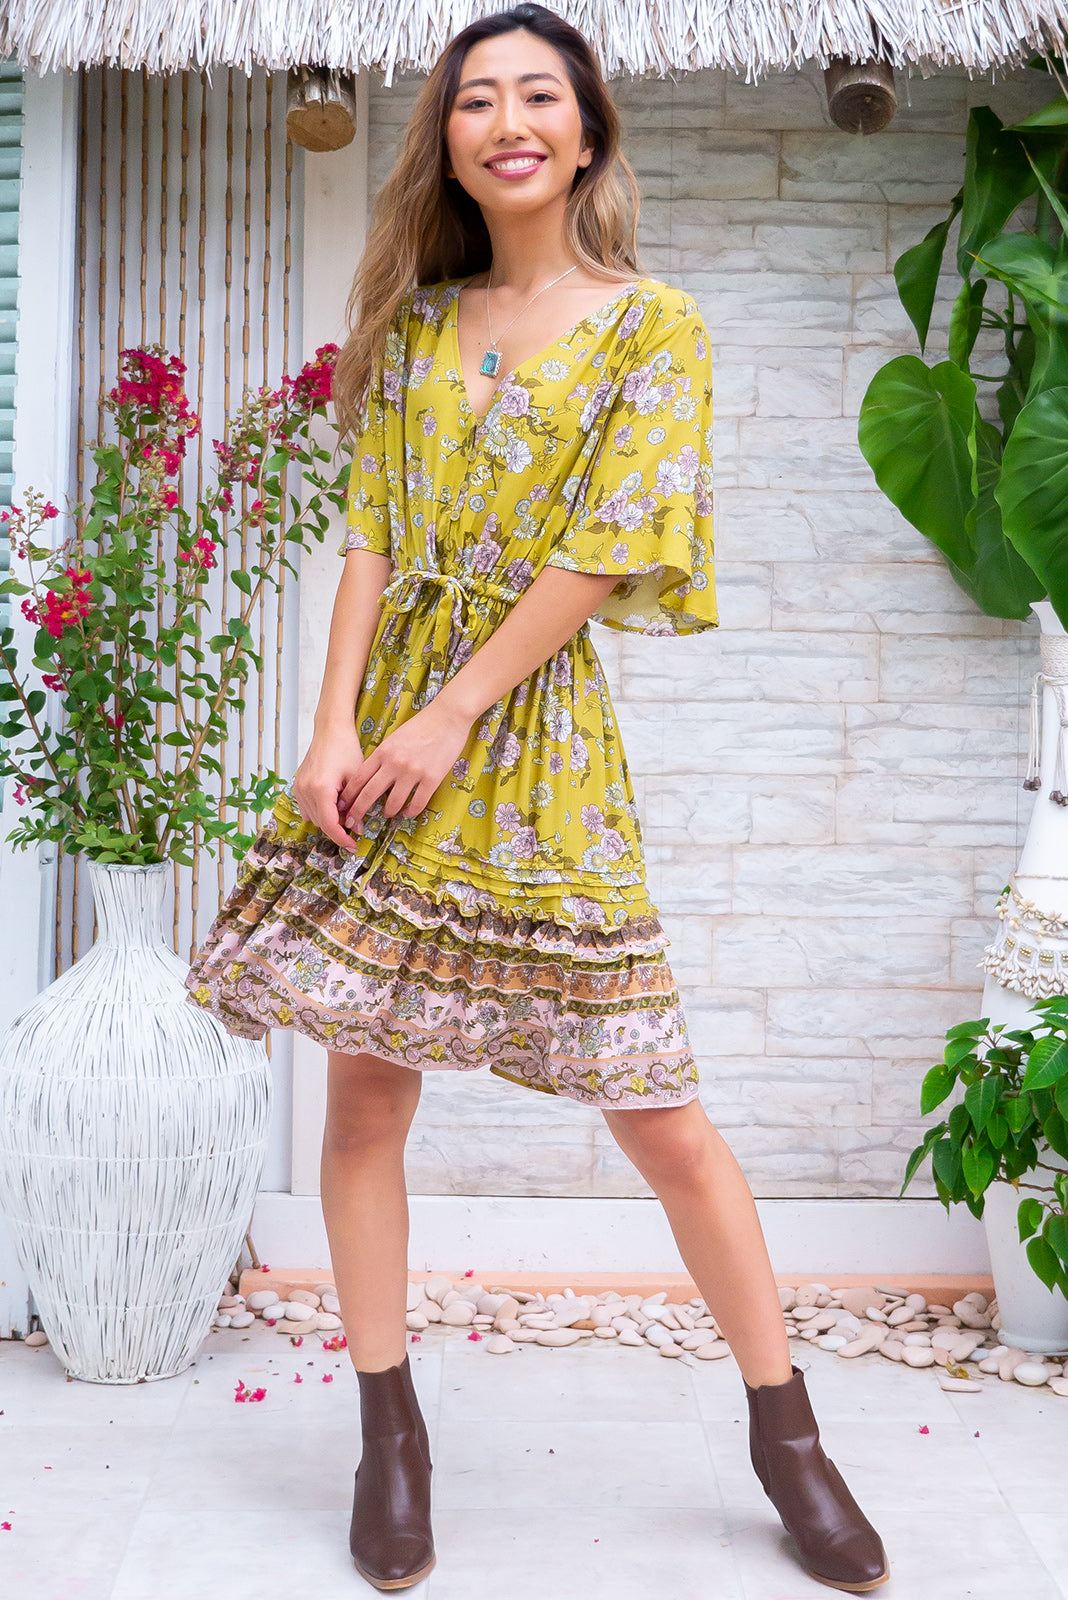 The Dora Olive Mini Dress is a pretty boho frock featuring flutter sleeves, functional button down detailing to drawstring waistline, frill features on skirt with border print, mini length, olive green base with 70's bohemian floral print in pinks, white, green, beige and coffee tones in woven 100% rayon.